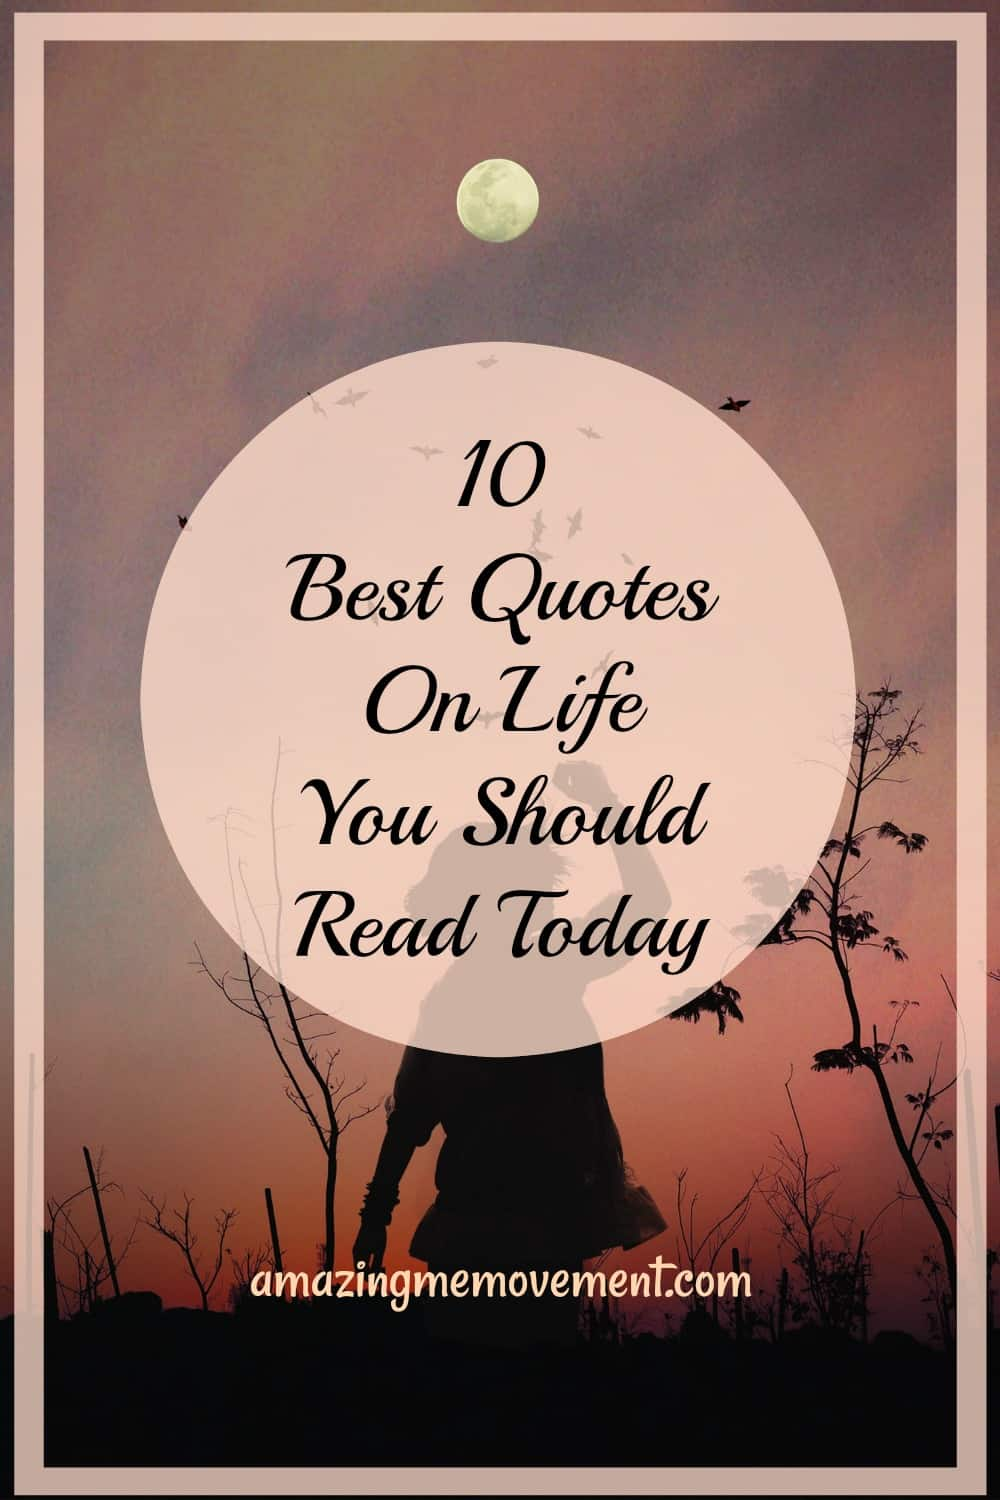 10 best quotes on life